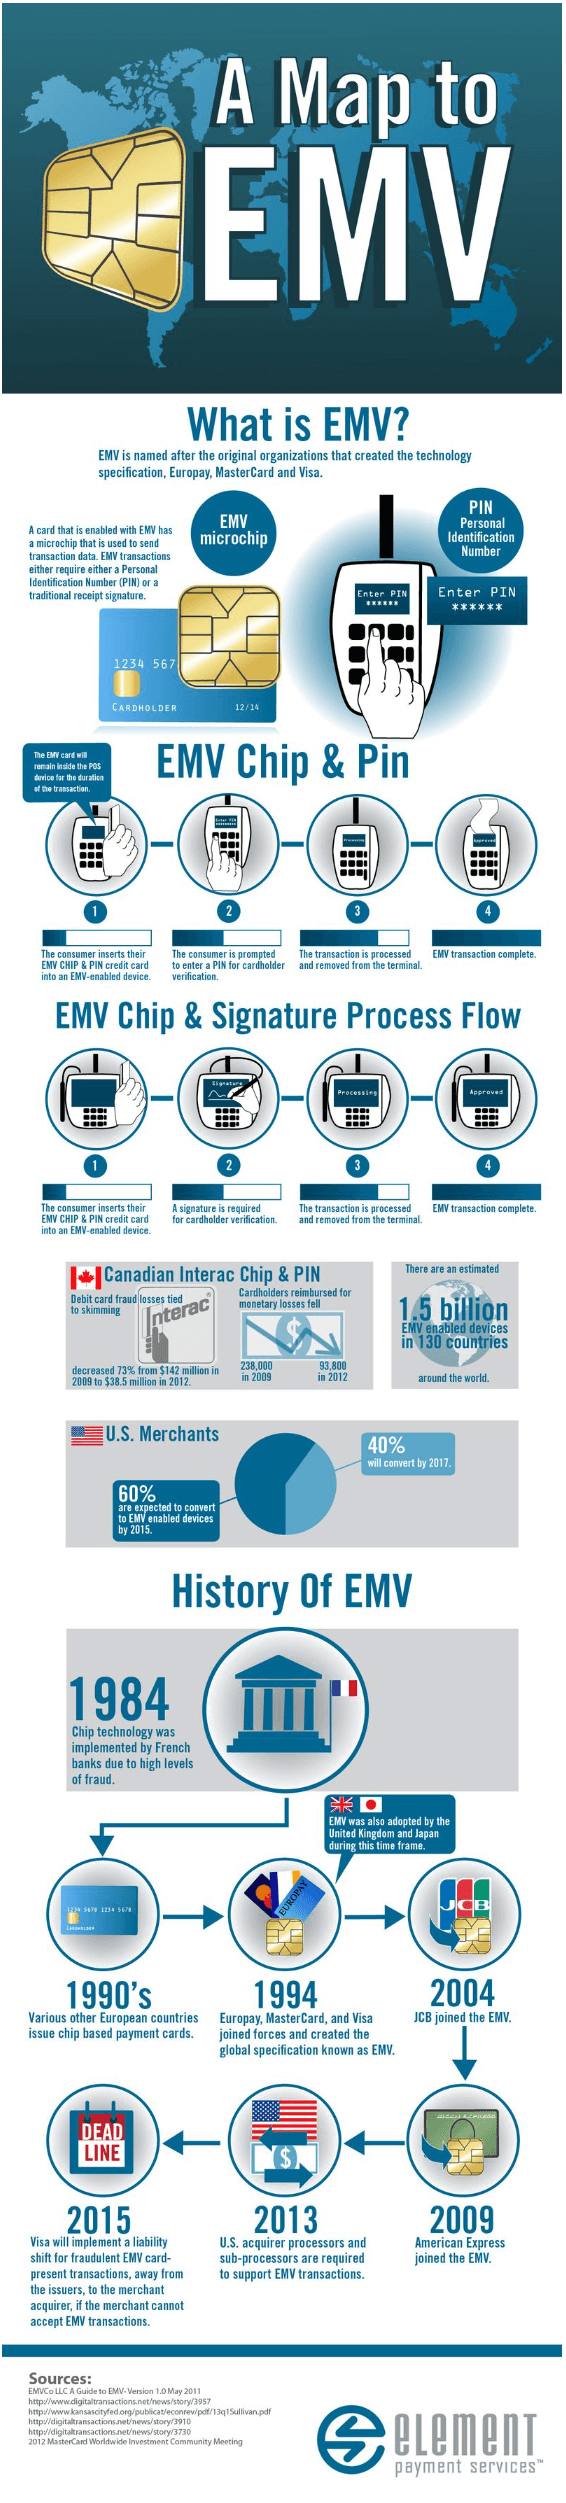 a-map-to-emv-europay-mastercard-and-visa-tips-tipsographic